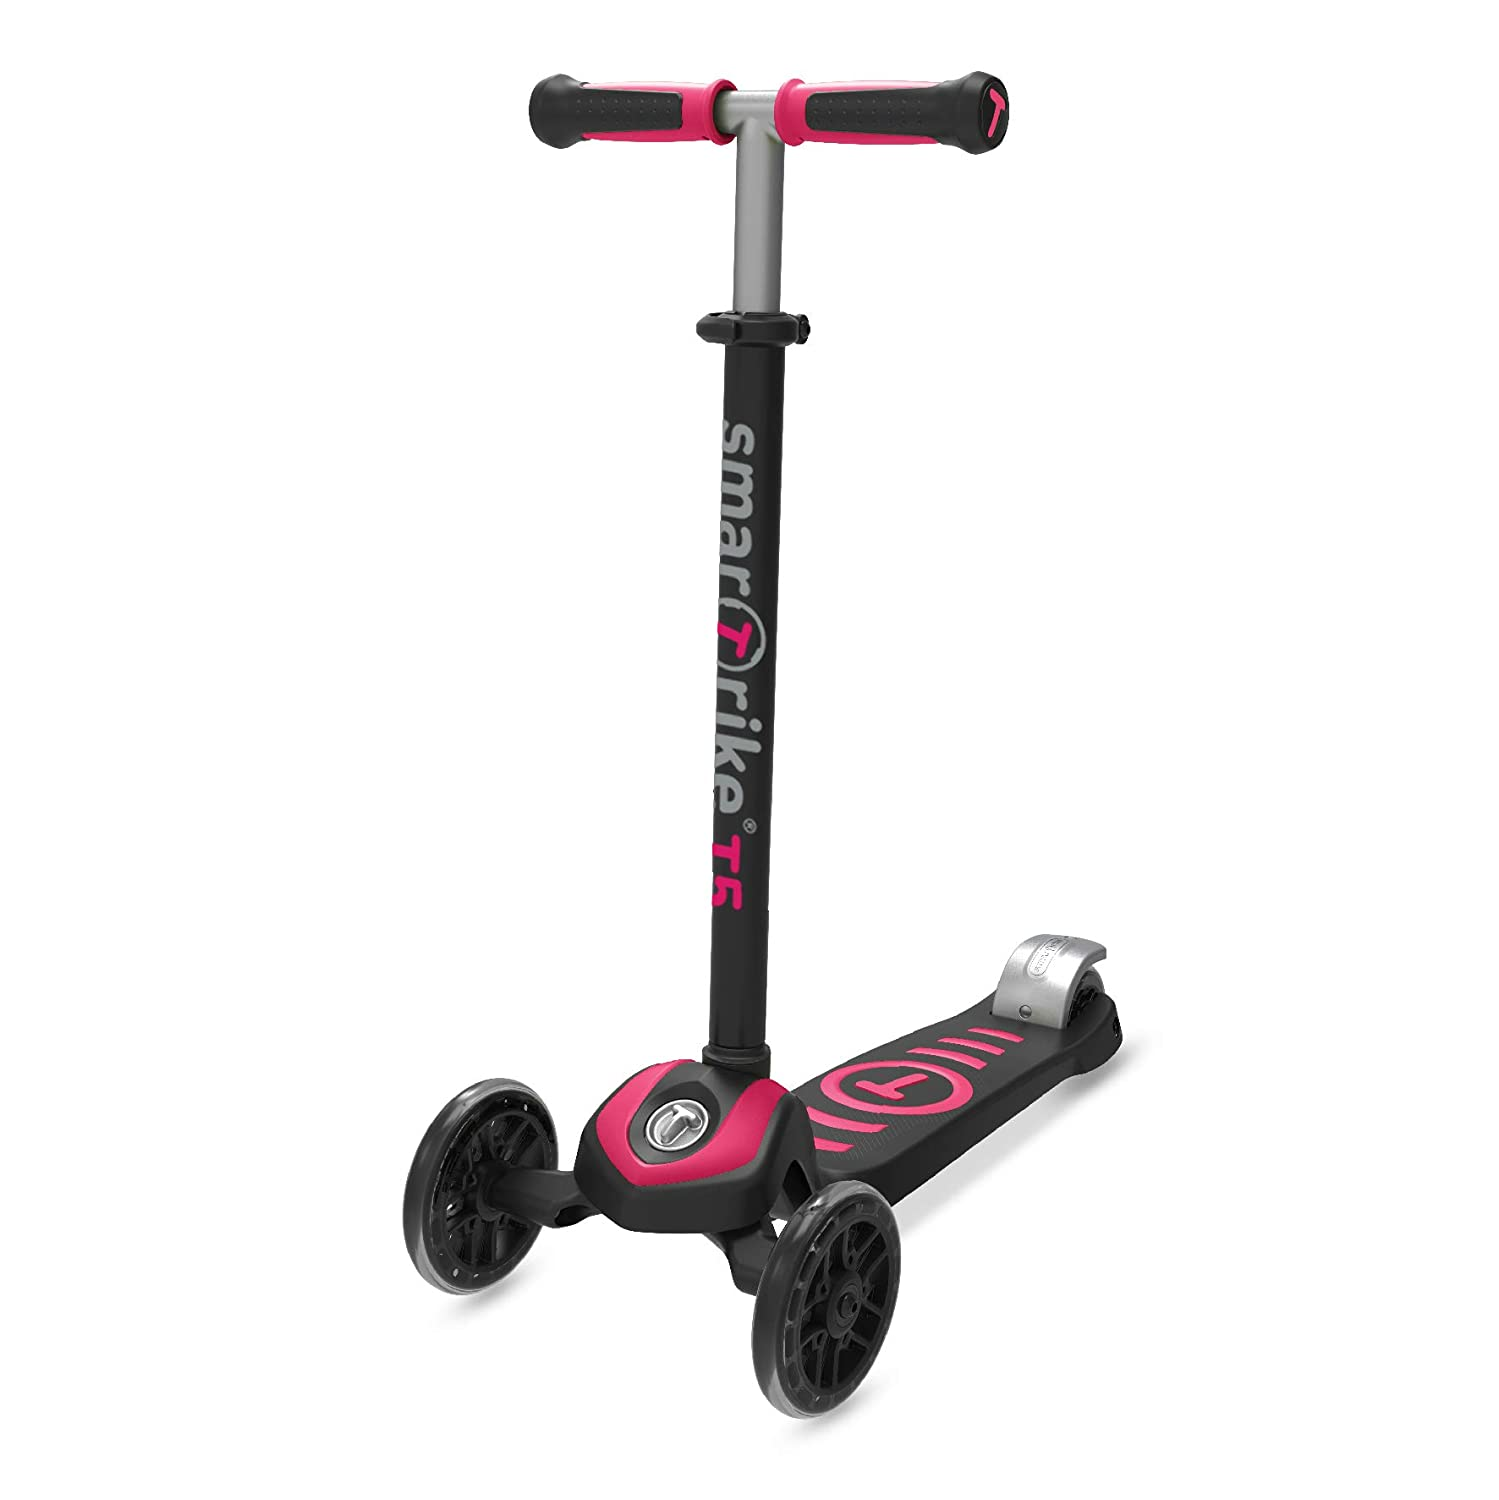 SMARTRIKE Patinete, Color Fucsia (PL Ociotrends 2010100)